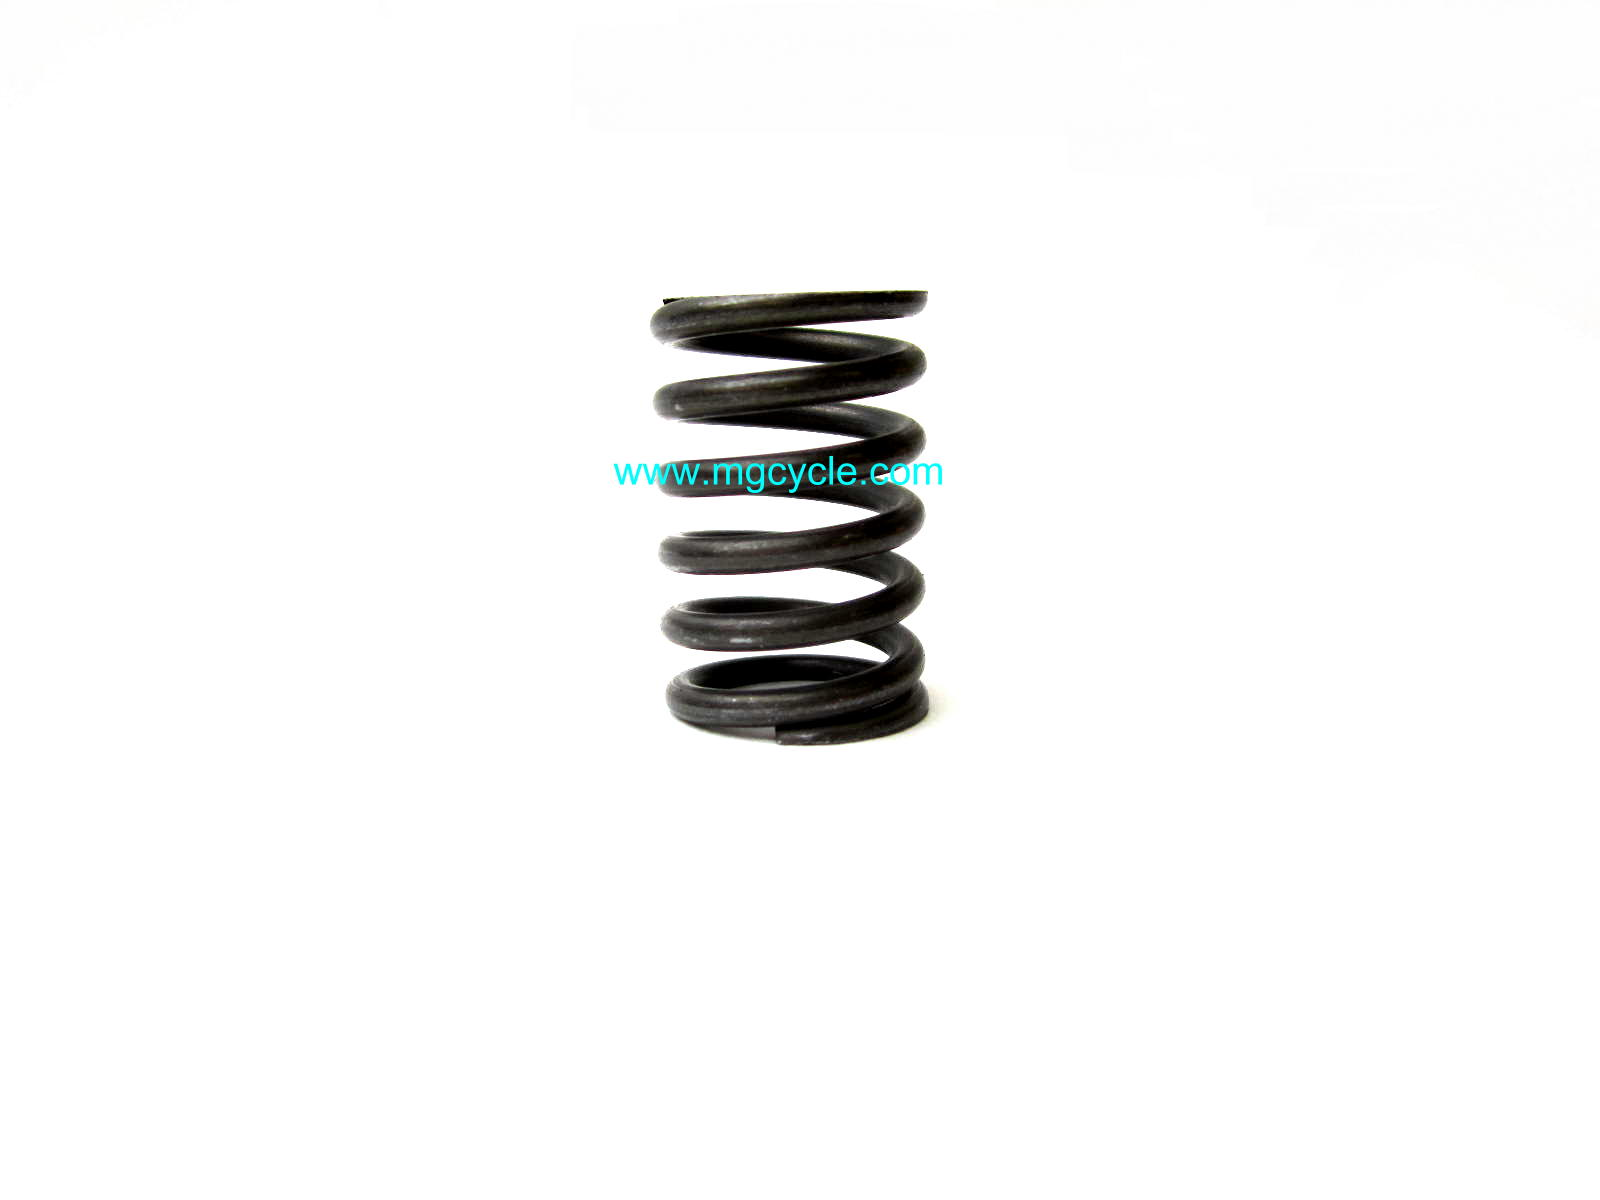 Soft clutch spring for late model 10 spring clutches GU04084100